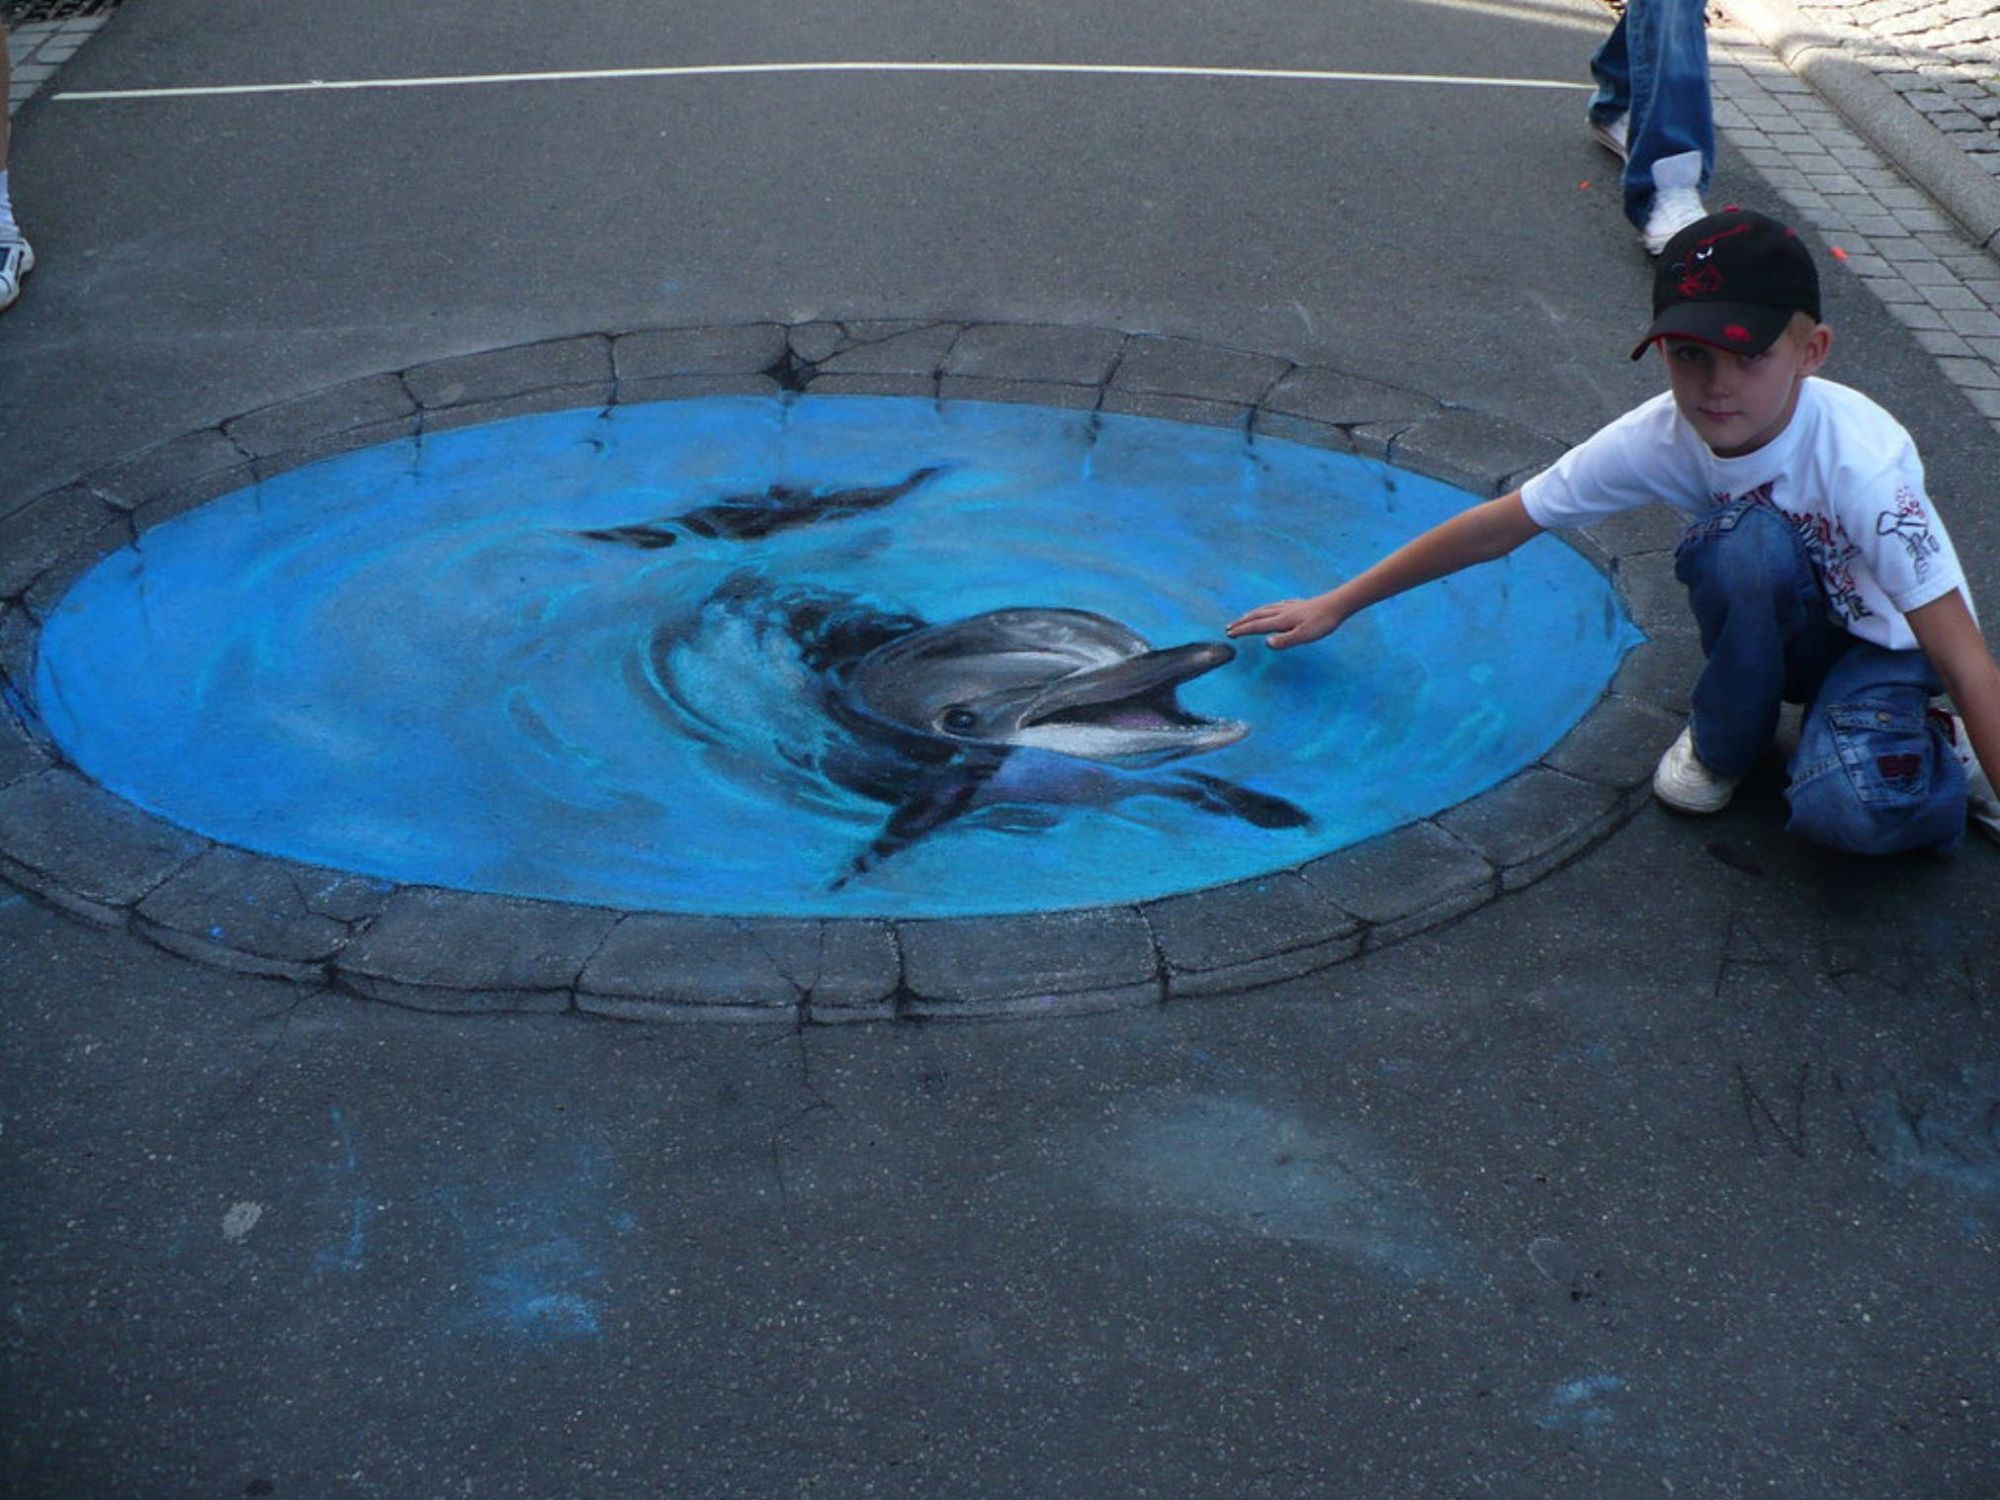 Festmenyek 3d ben 575 - Find This Pin And More On Street Art And 3d Graffiti